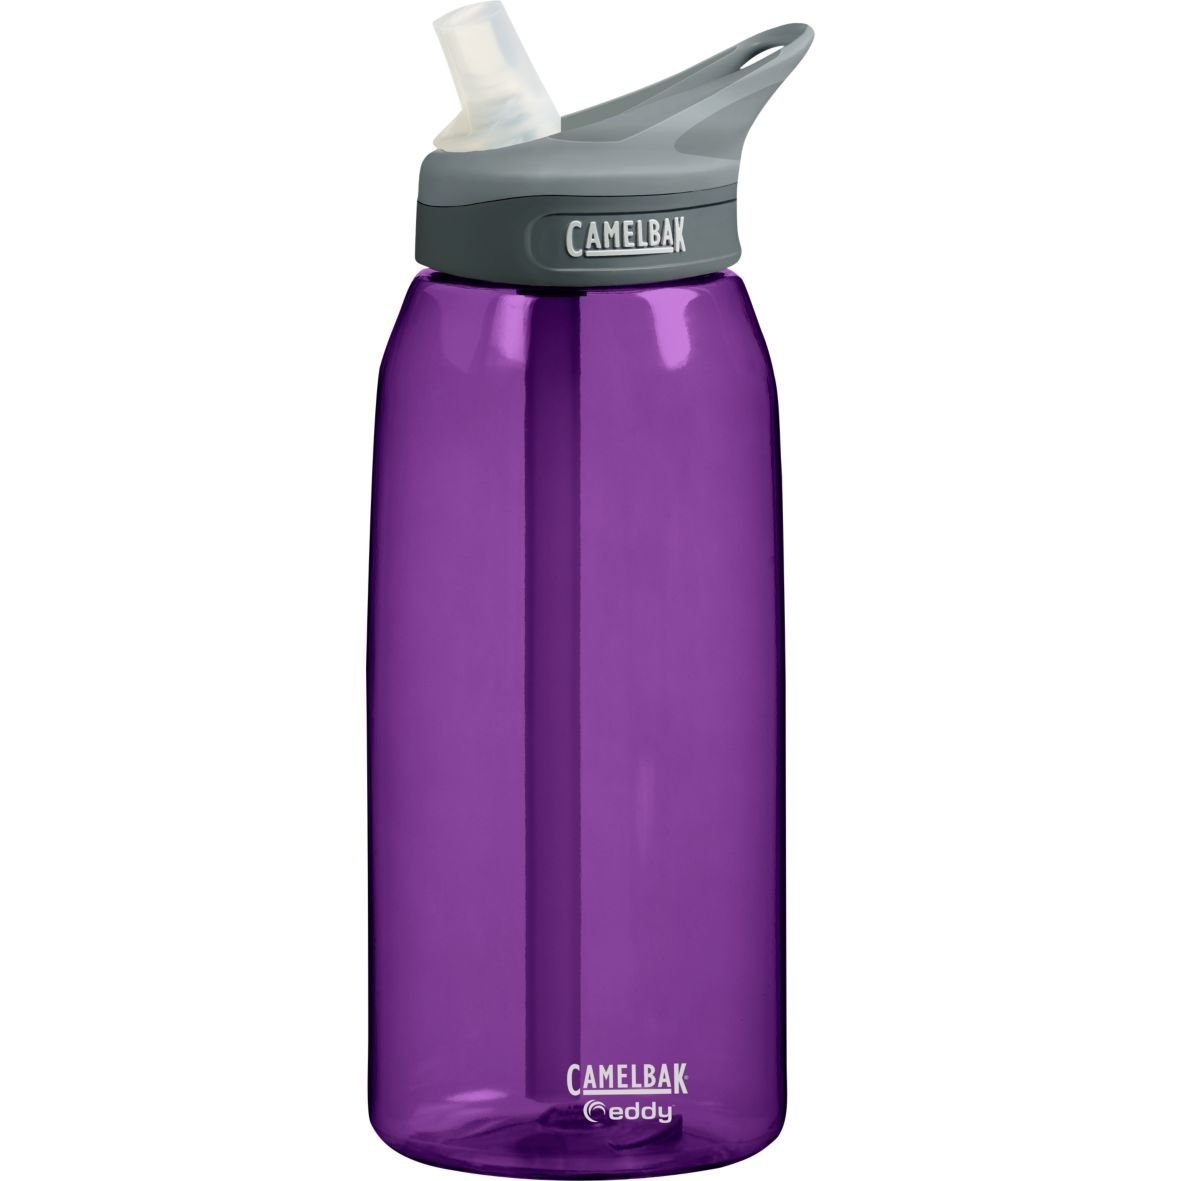 CamelBak eddy 1L Water Bottle by IP_BS_R_56